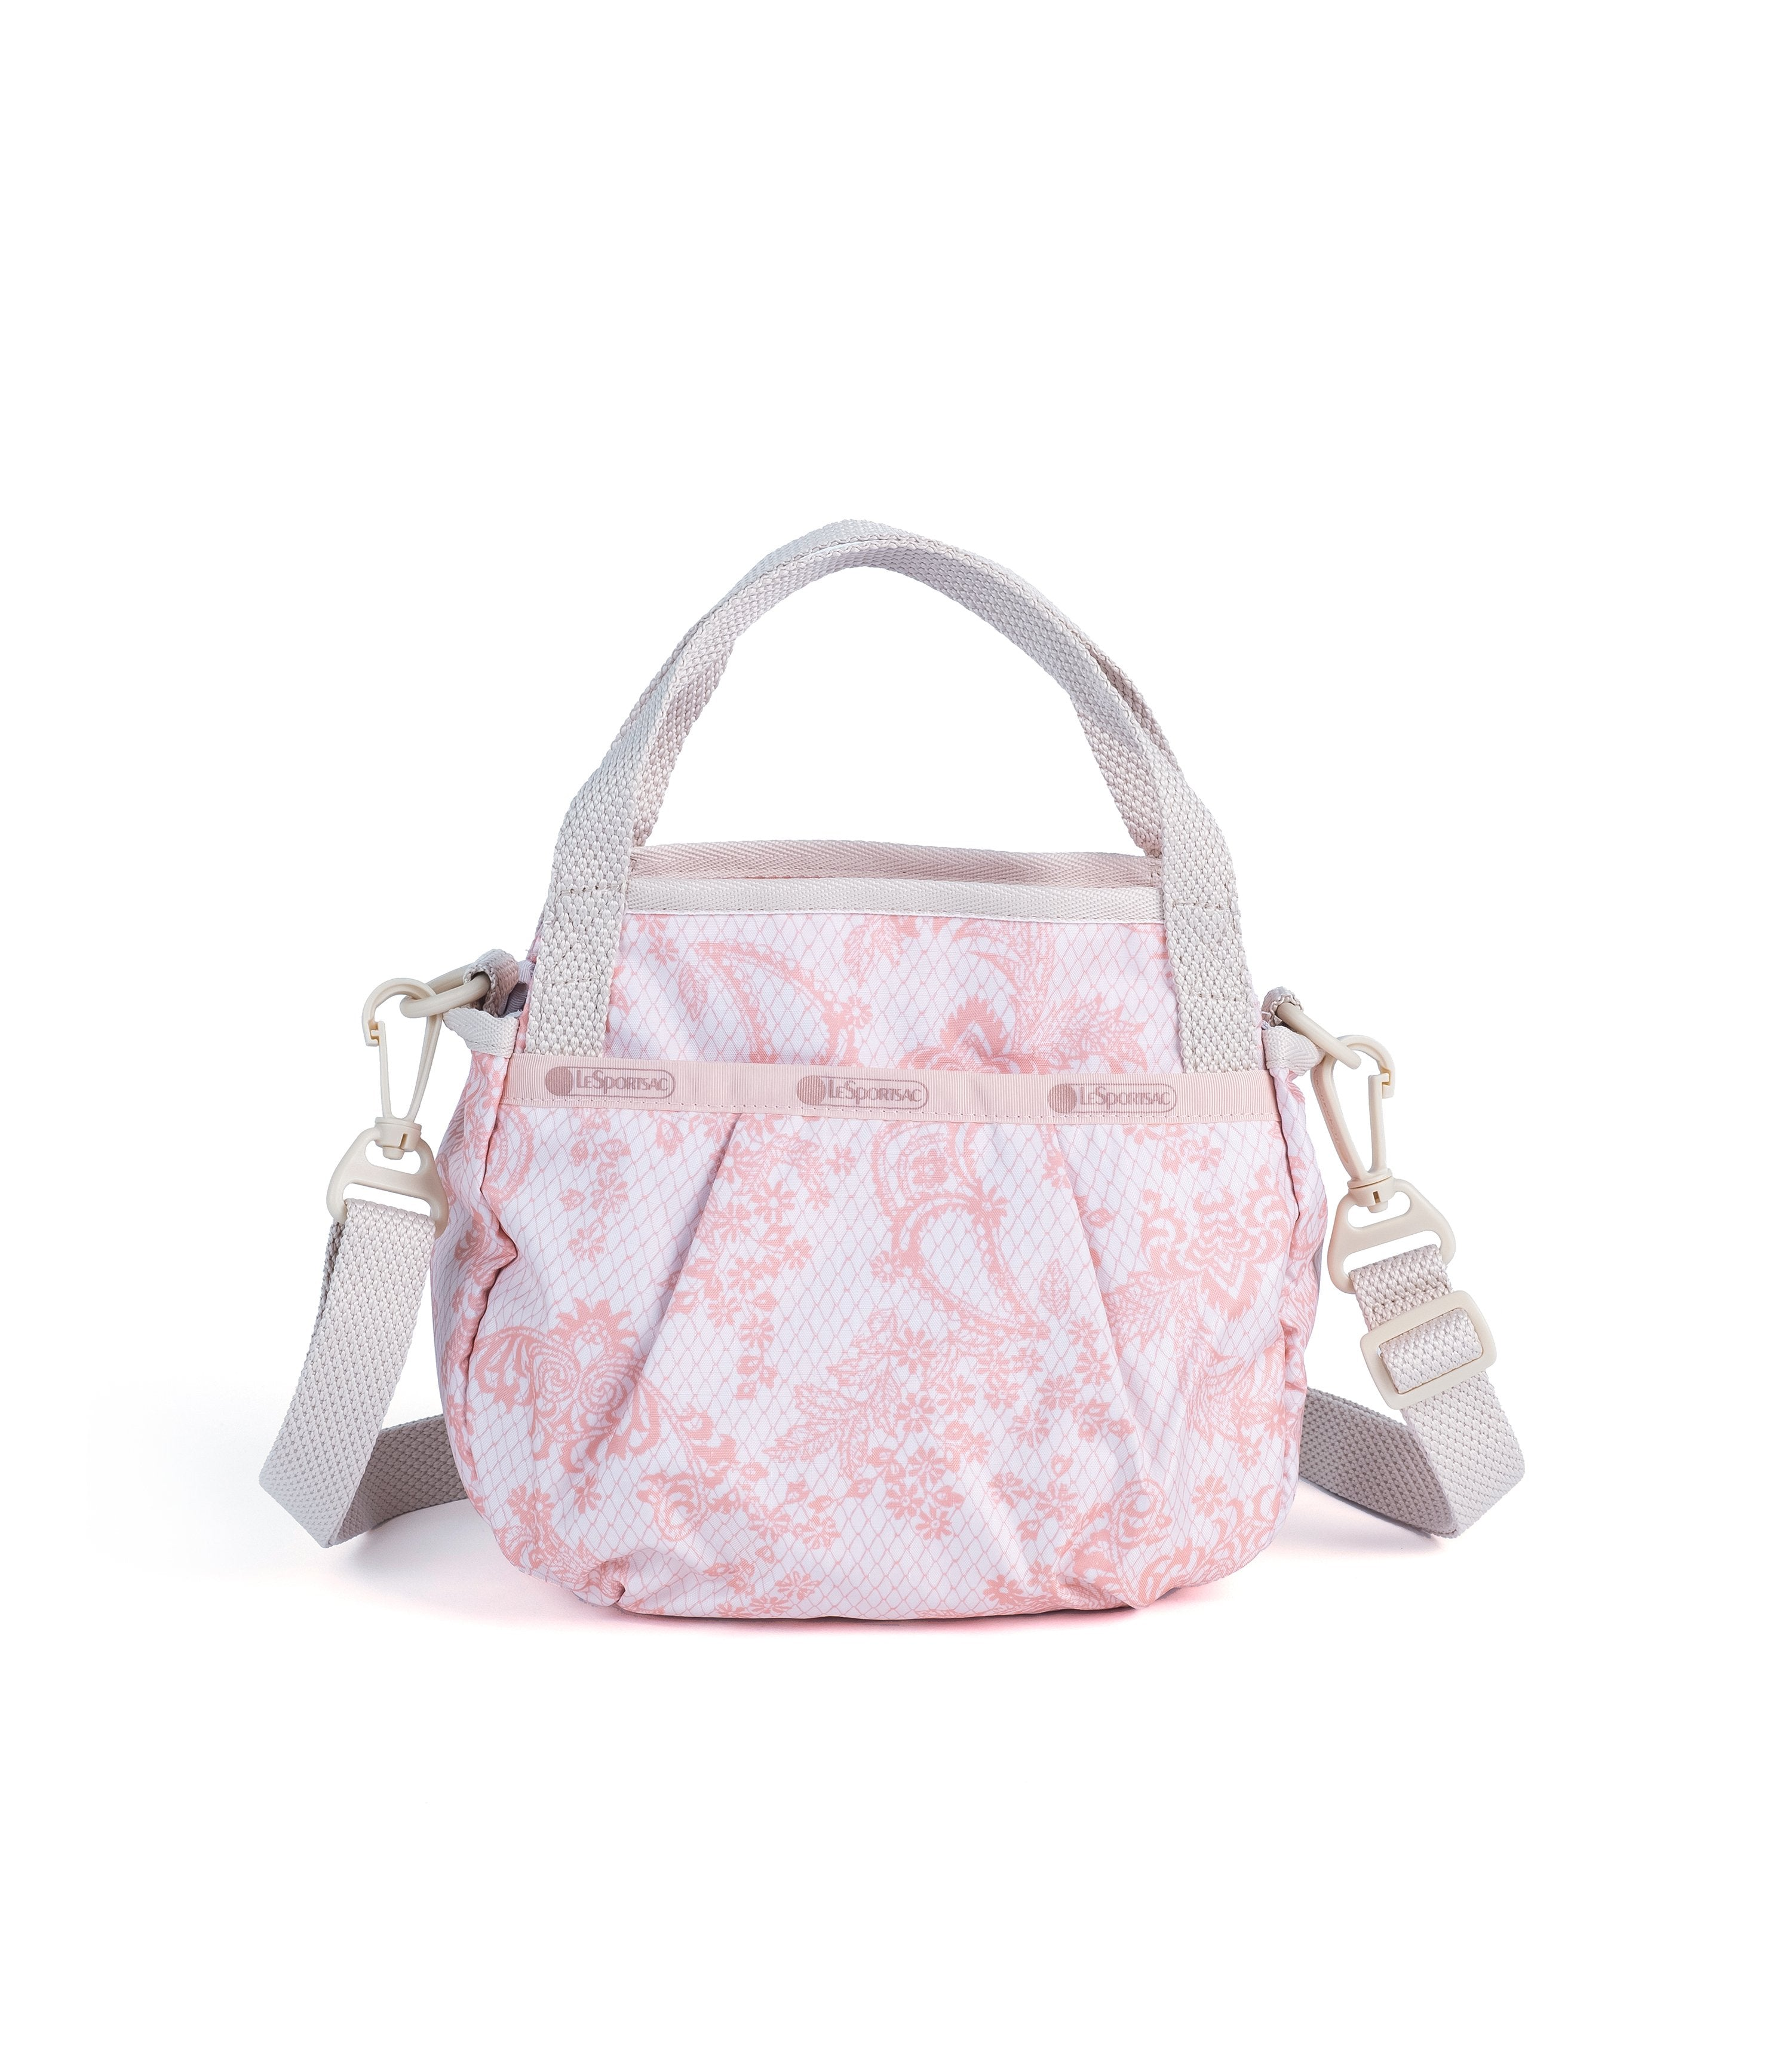 LeSportsac - Pleated Small Jenni Crossbody - Handbags - Ludlow Lace print